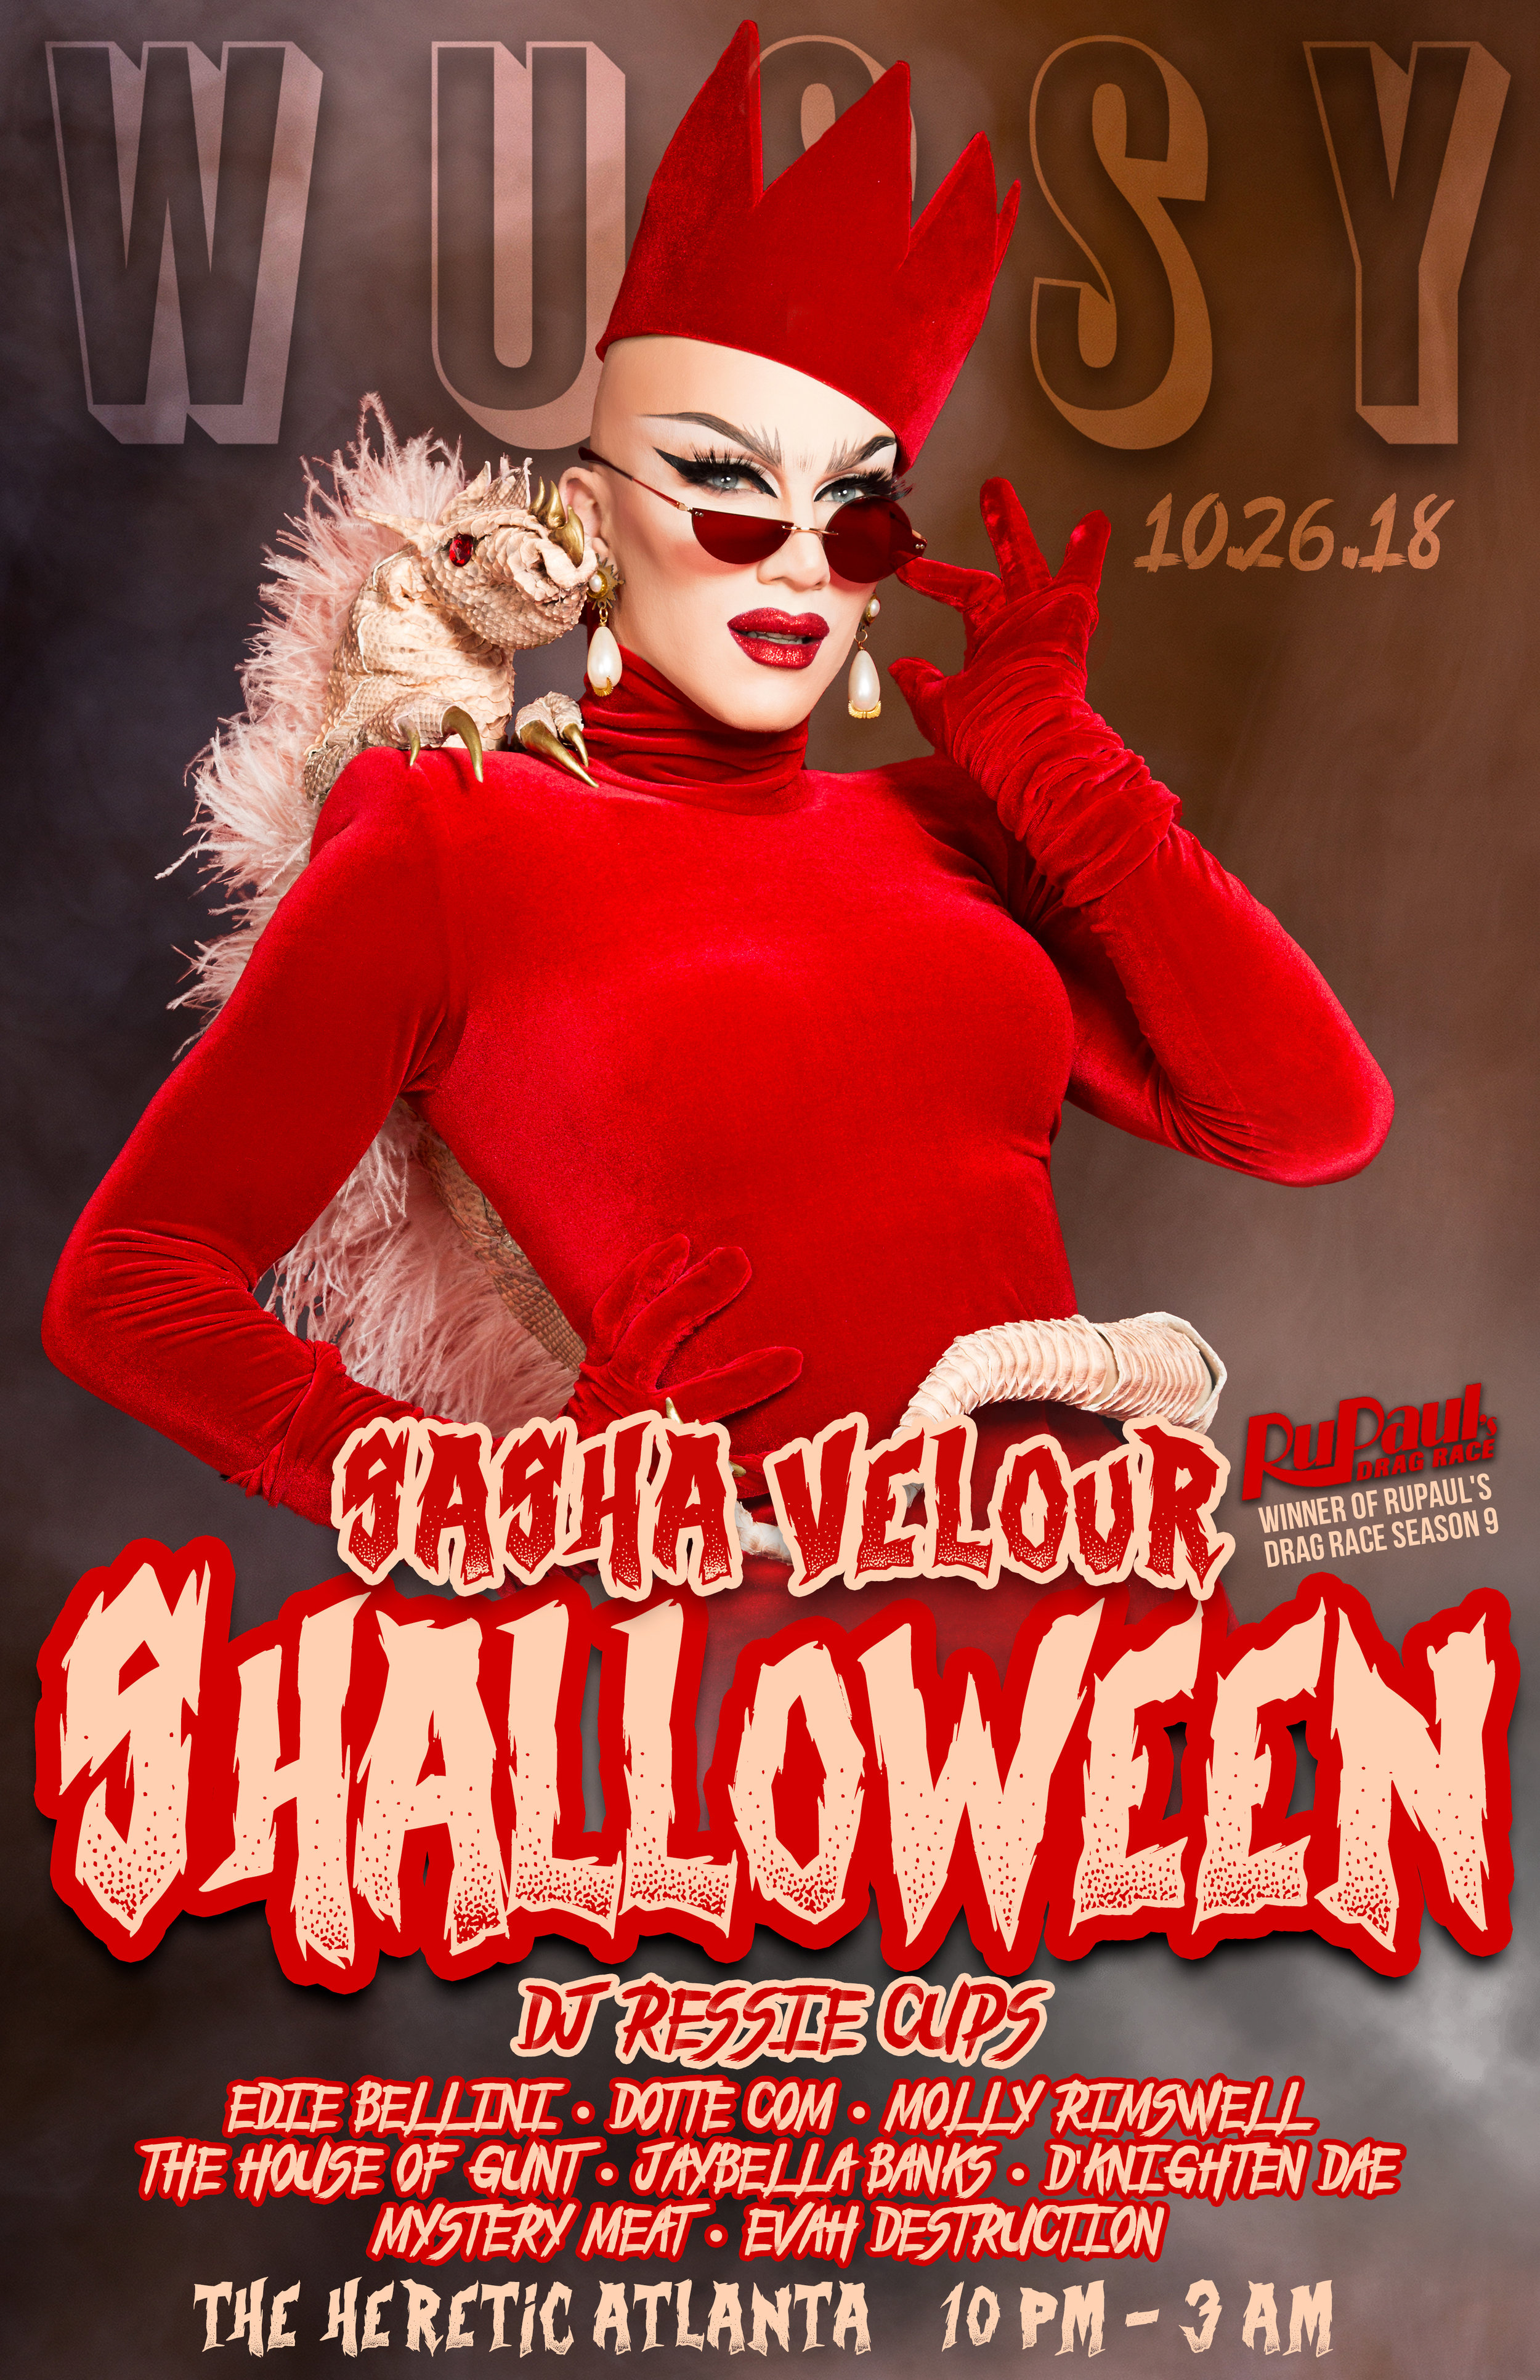 Shalloween with Sasha Velour - Dance Party + Drag Show + Costume Extravaganza!